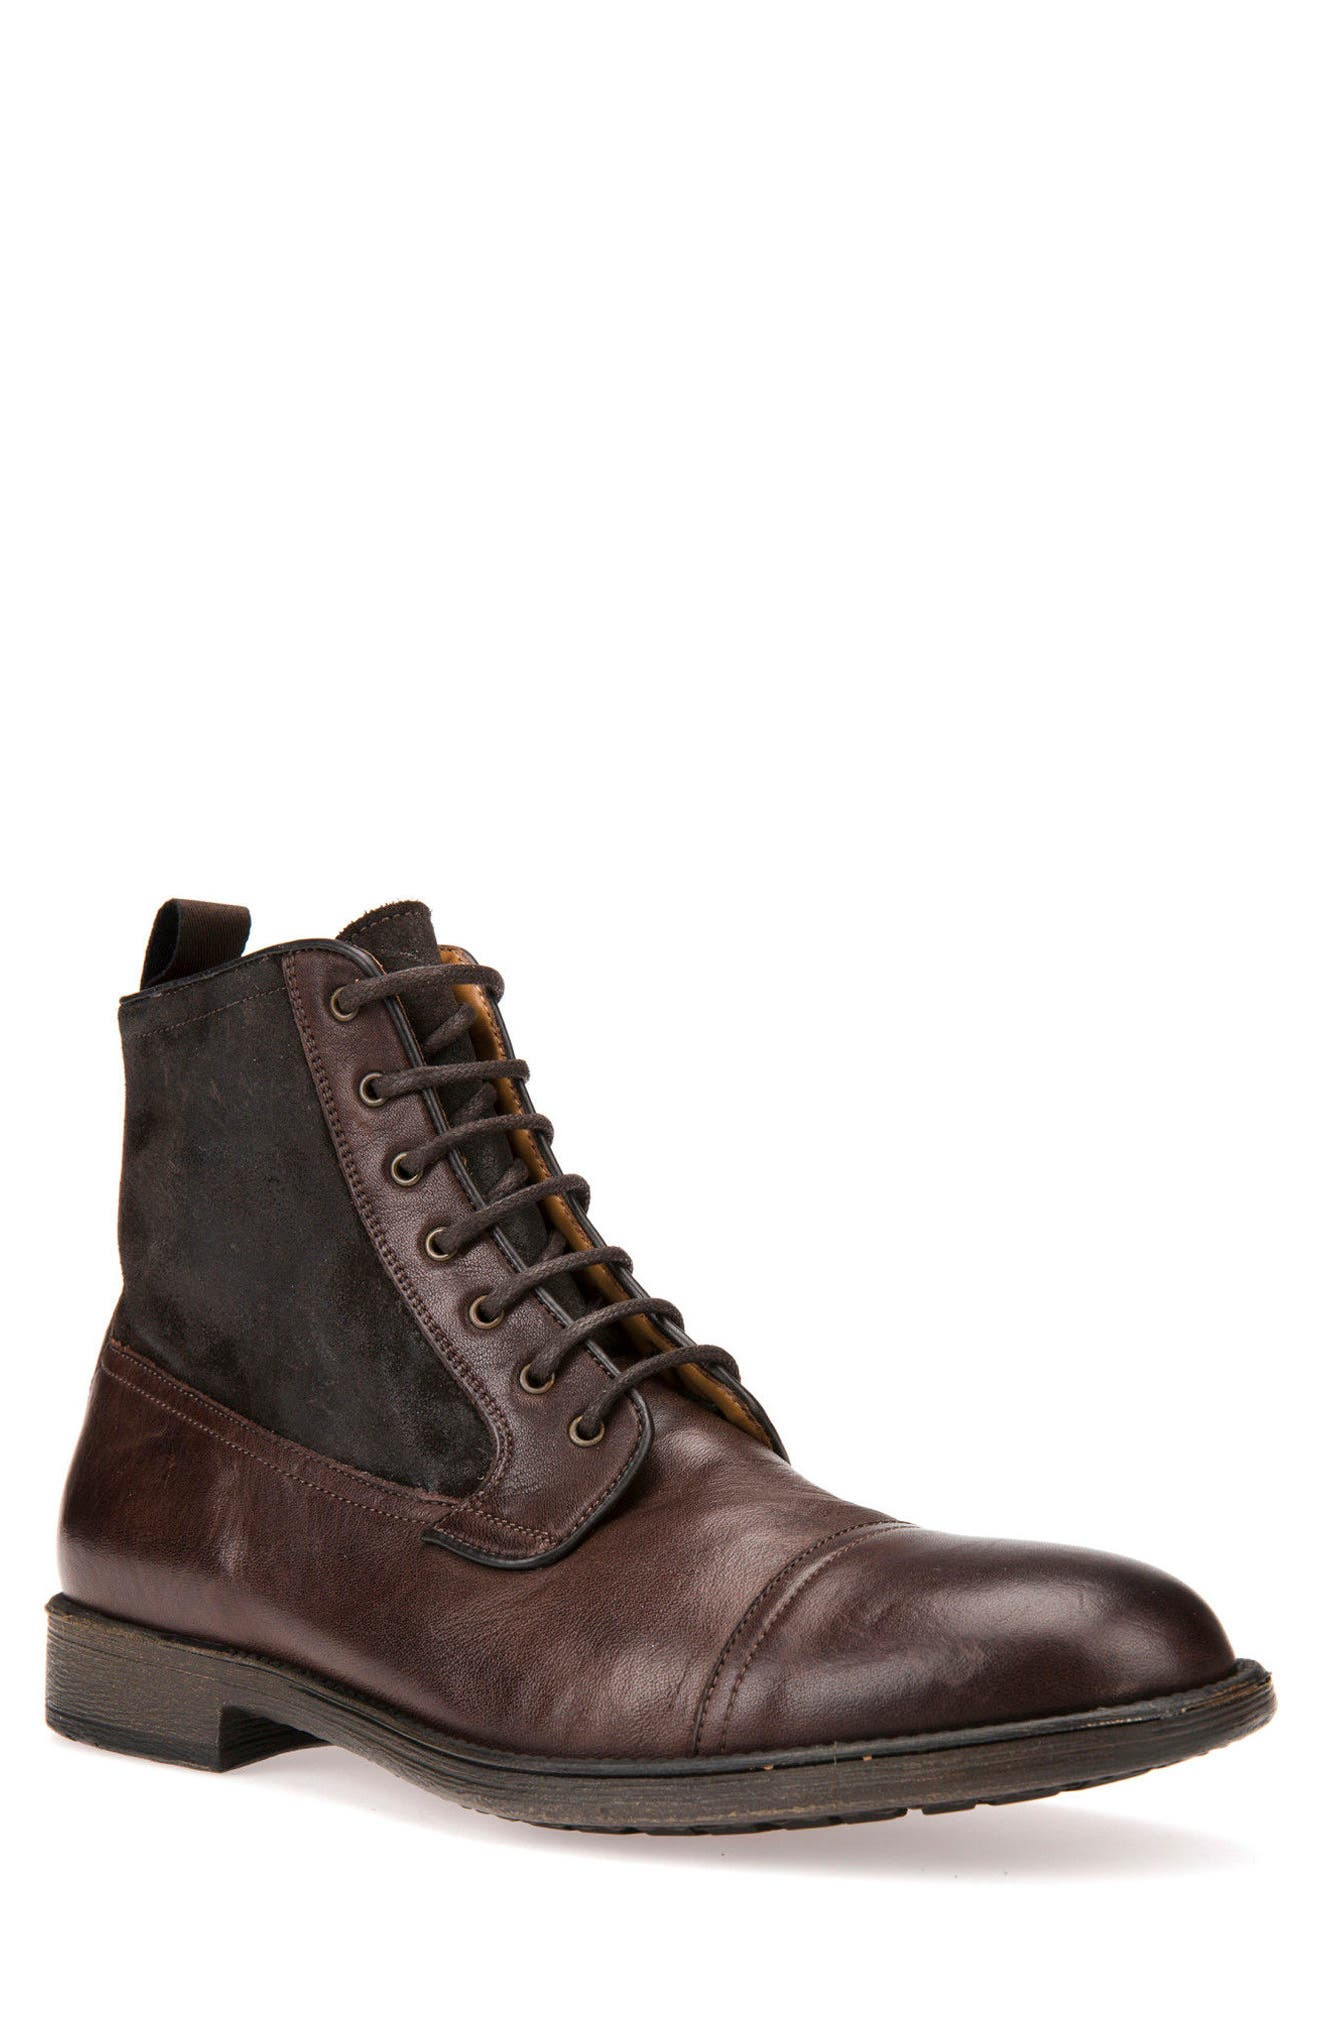 Main Image - Geox Jaylon 12 Cap-Toe Boot (Men)